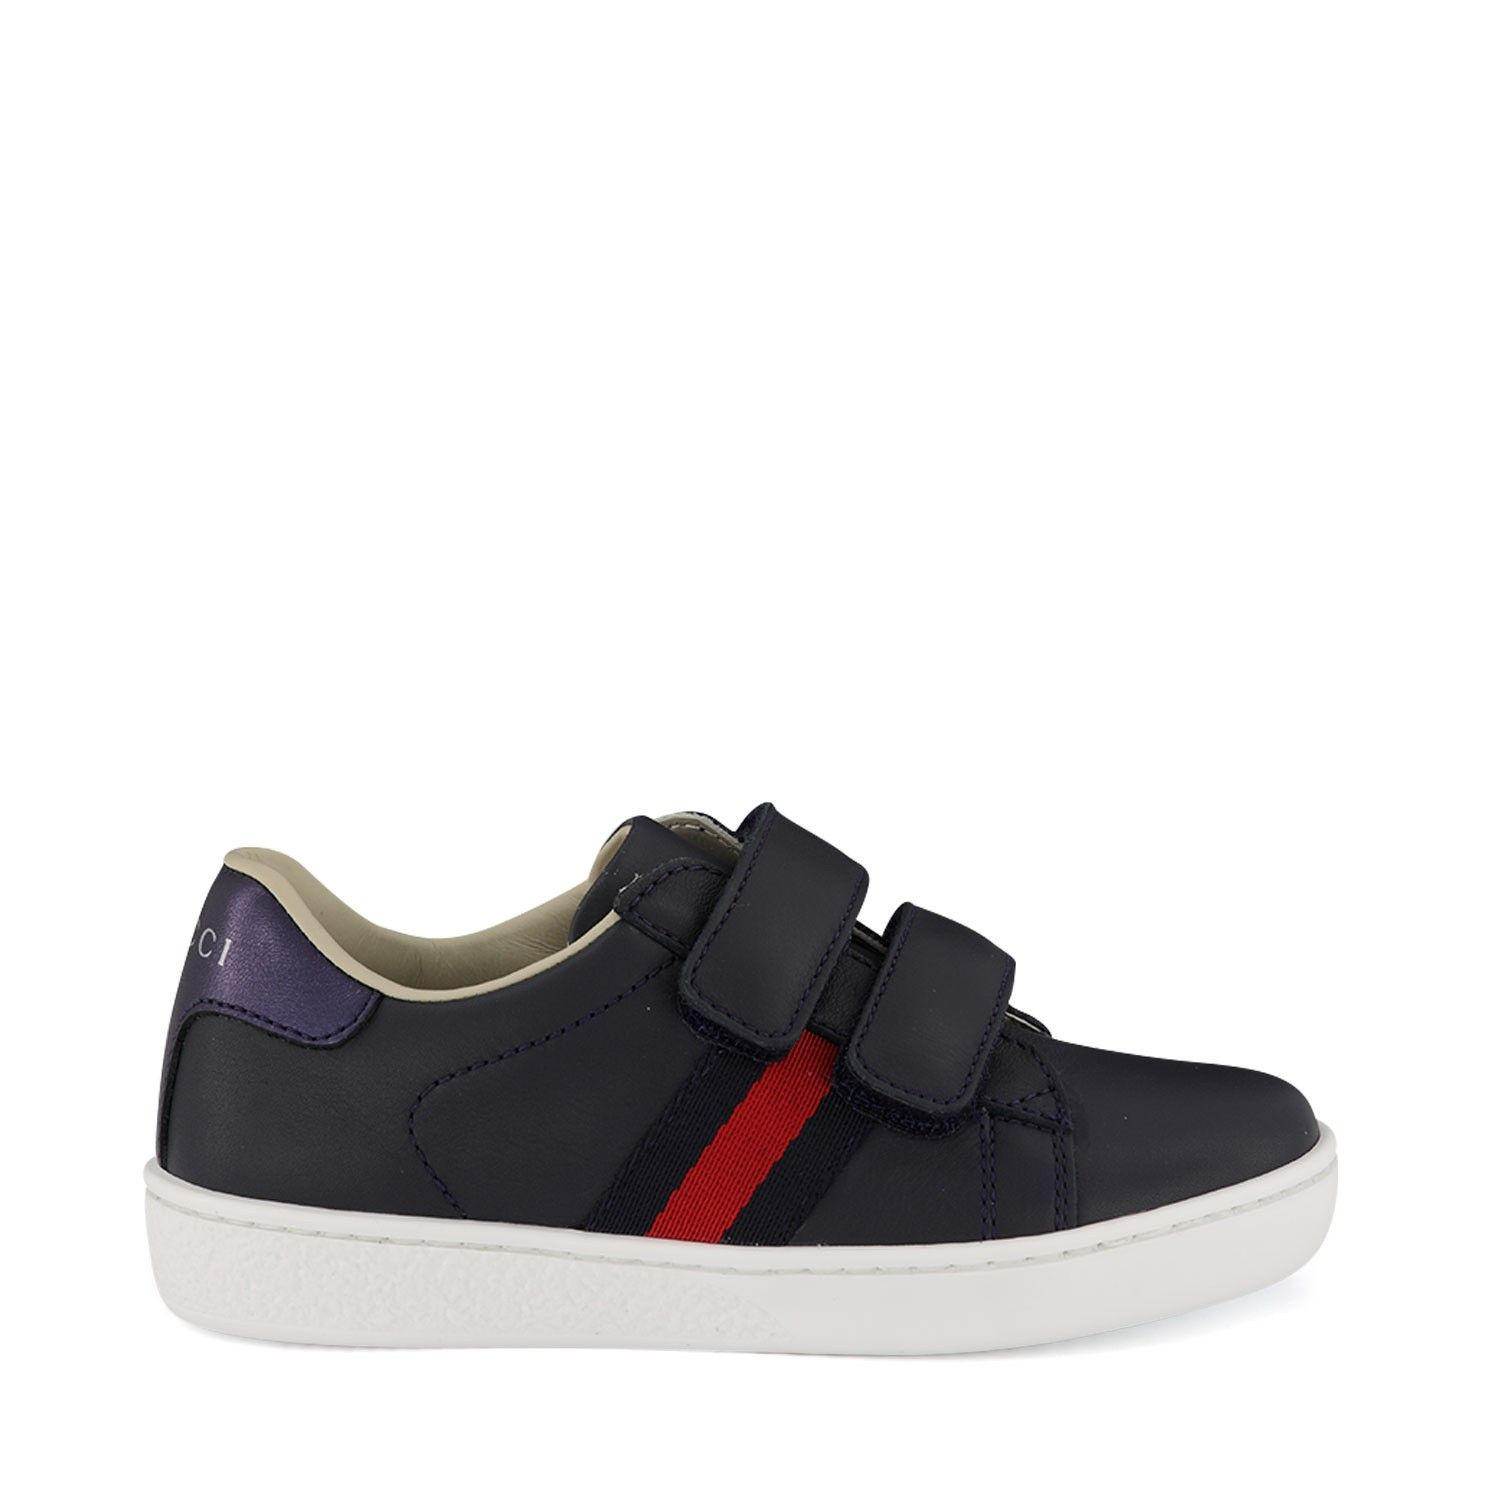 Picture of Gucci 455447 kids sneakers navy